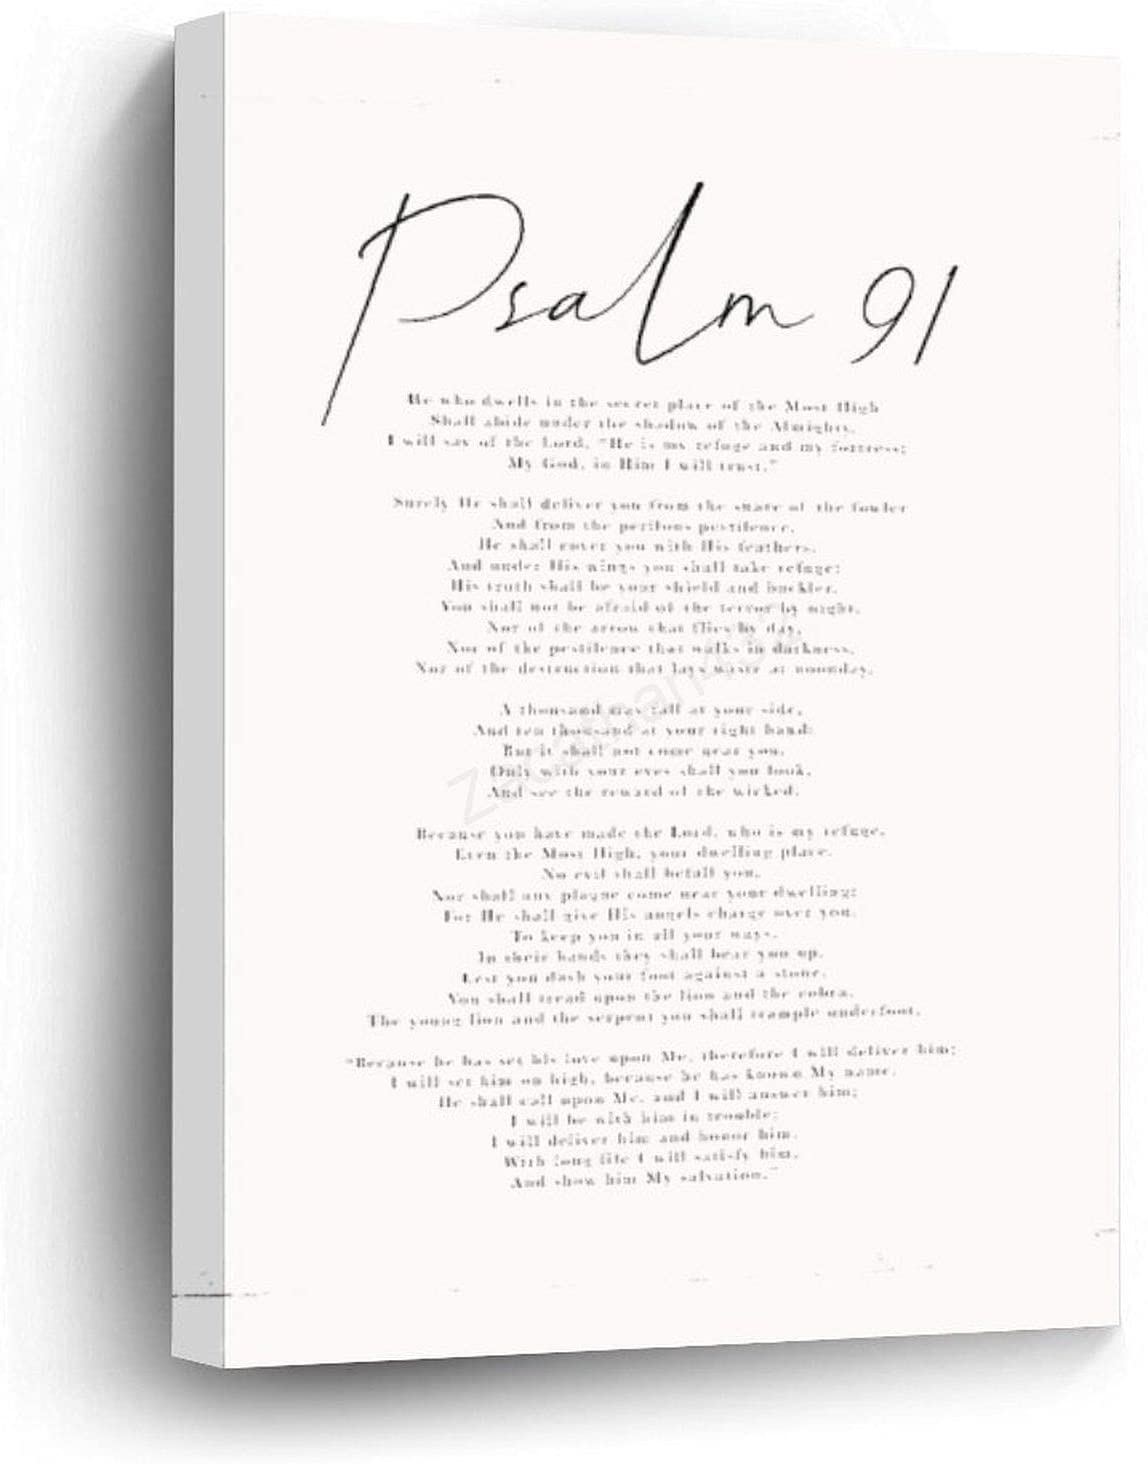 Canvas Wall Art 36 x 24 Inch Psalm 91 Bible Verse Psalm NKJV Christian Gift Bible Quote Modern Scripture Baptism Gift Art Print, Framed Wrapped Quote Print, Housewarming Gift, Wall Art Home Decor